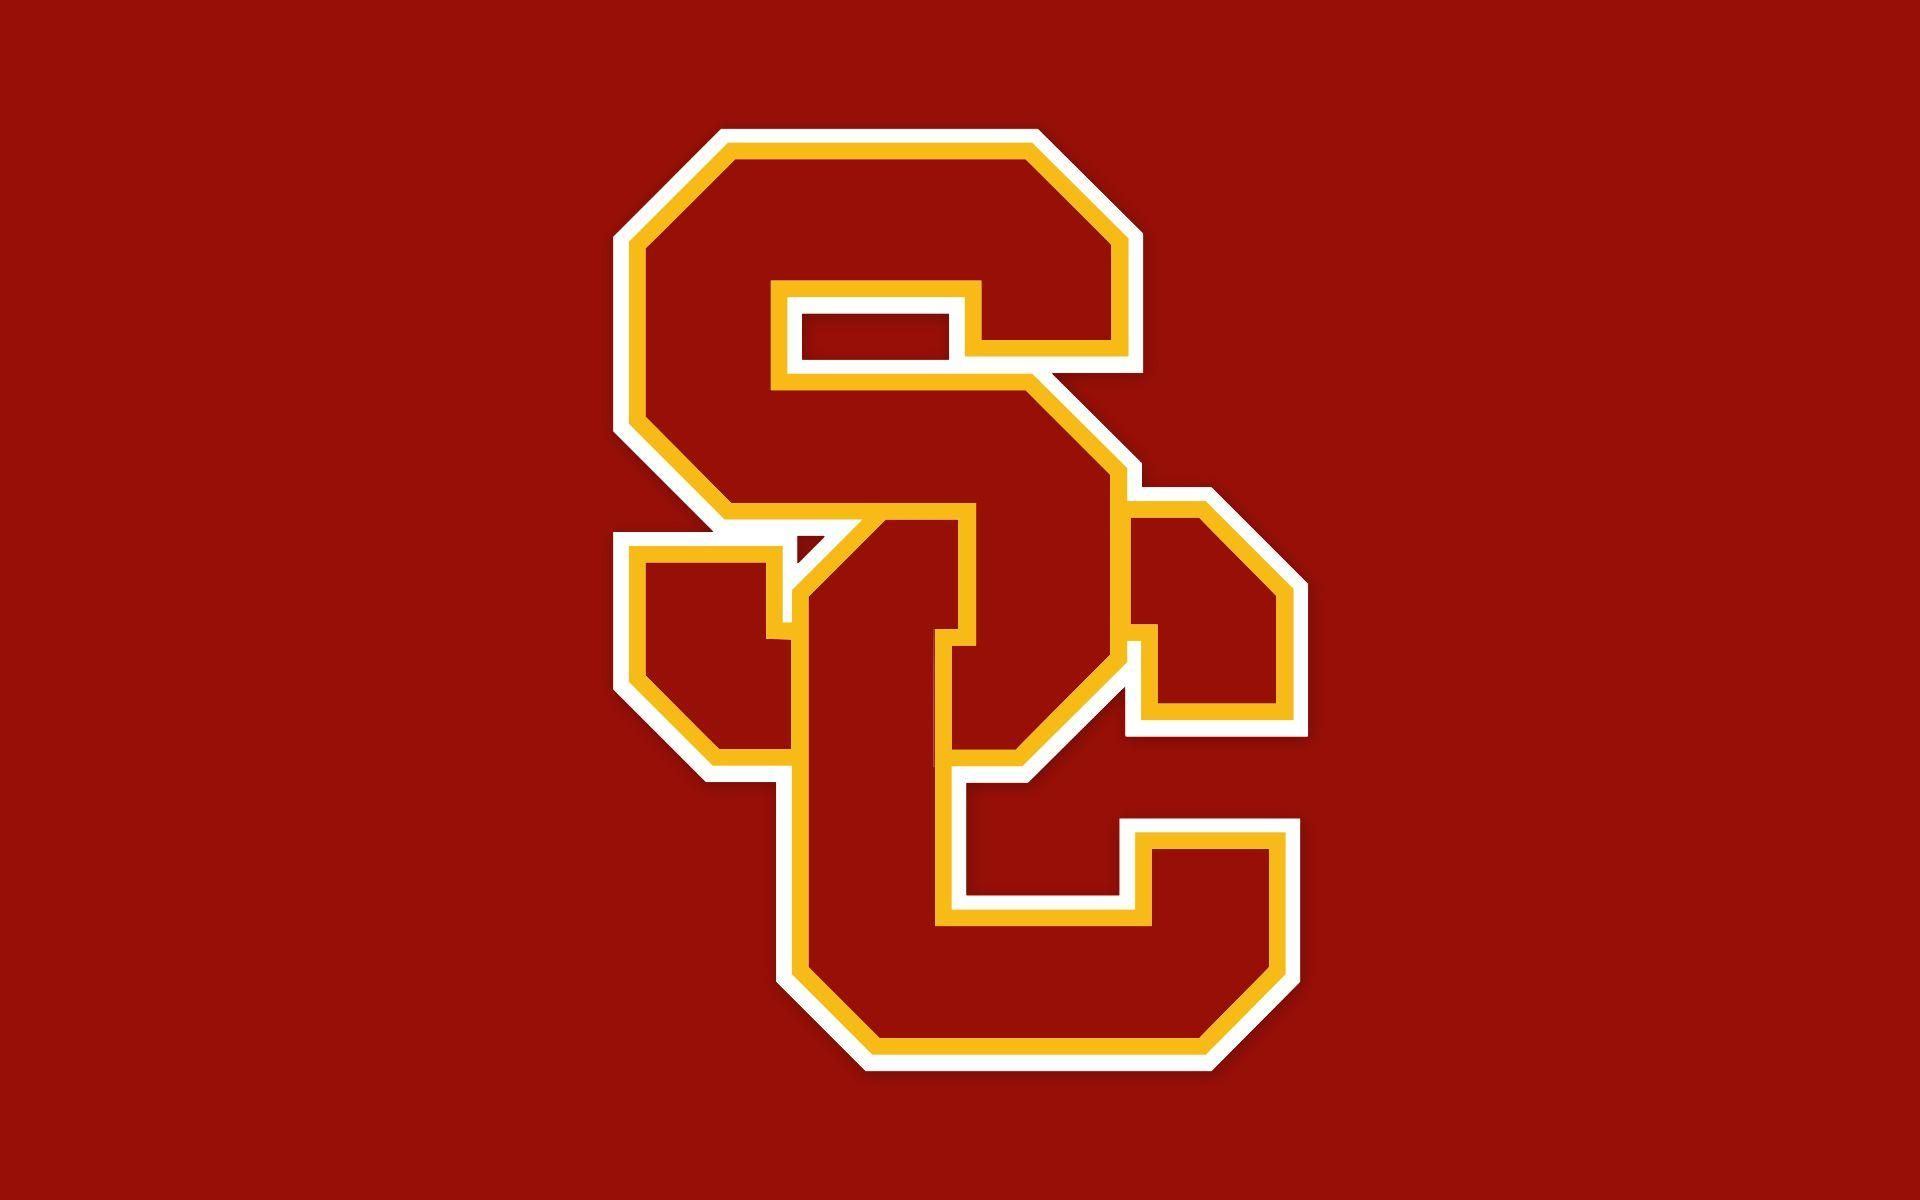 Usc Trojan Football Wallpaper Wallpapers 2020 With Images Usc Trojans Football Trojans Football Usc Trojans